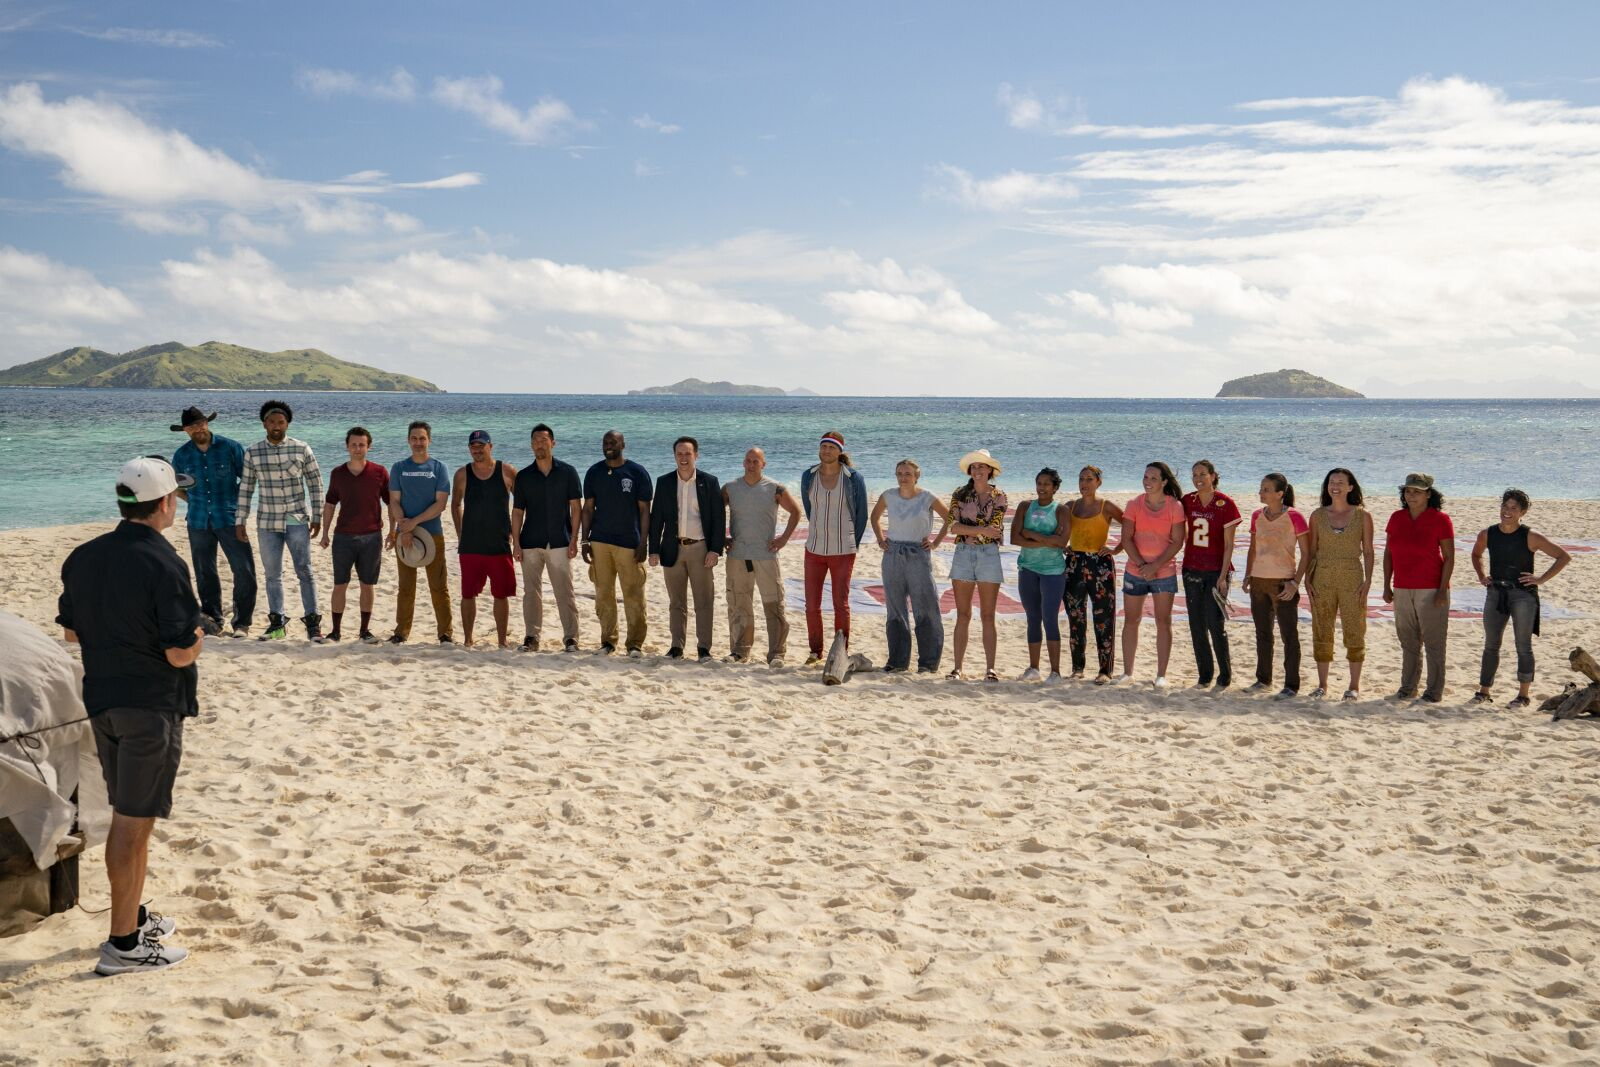 Survivor Winners at War: Each contestant explains why they will win